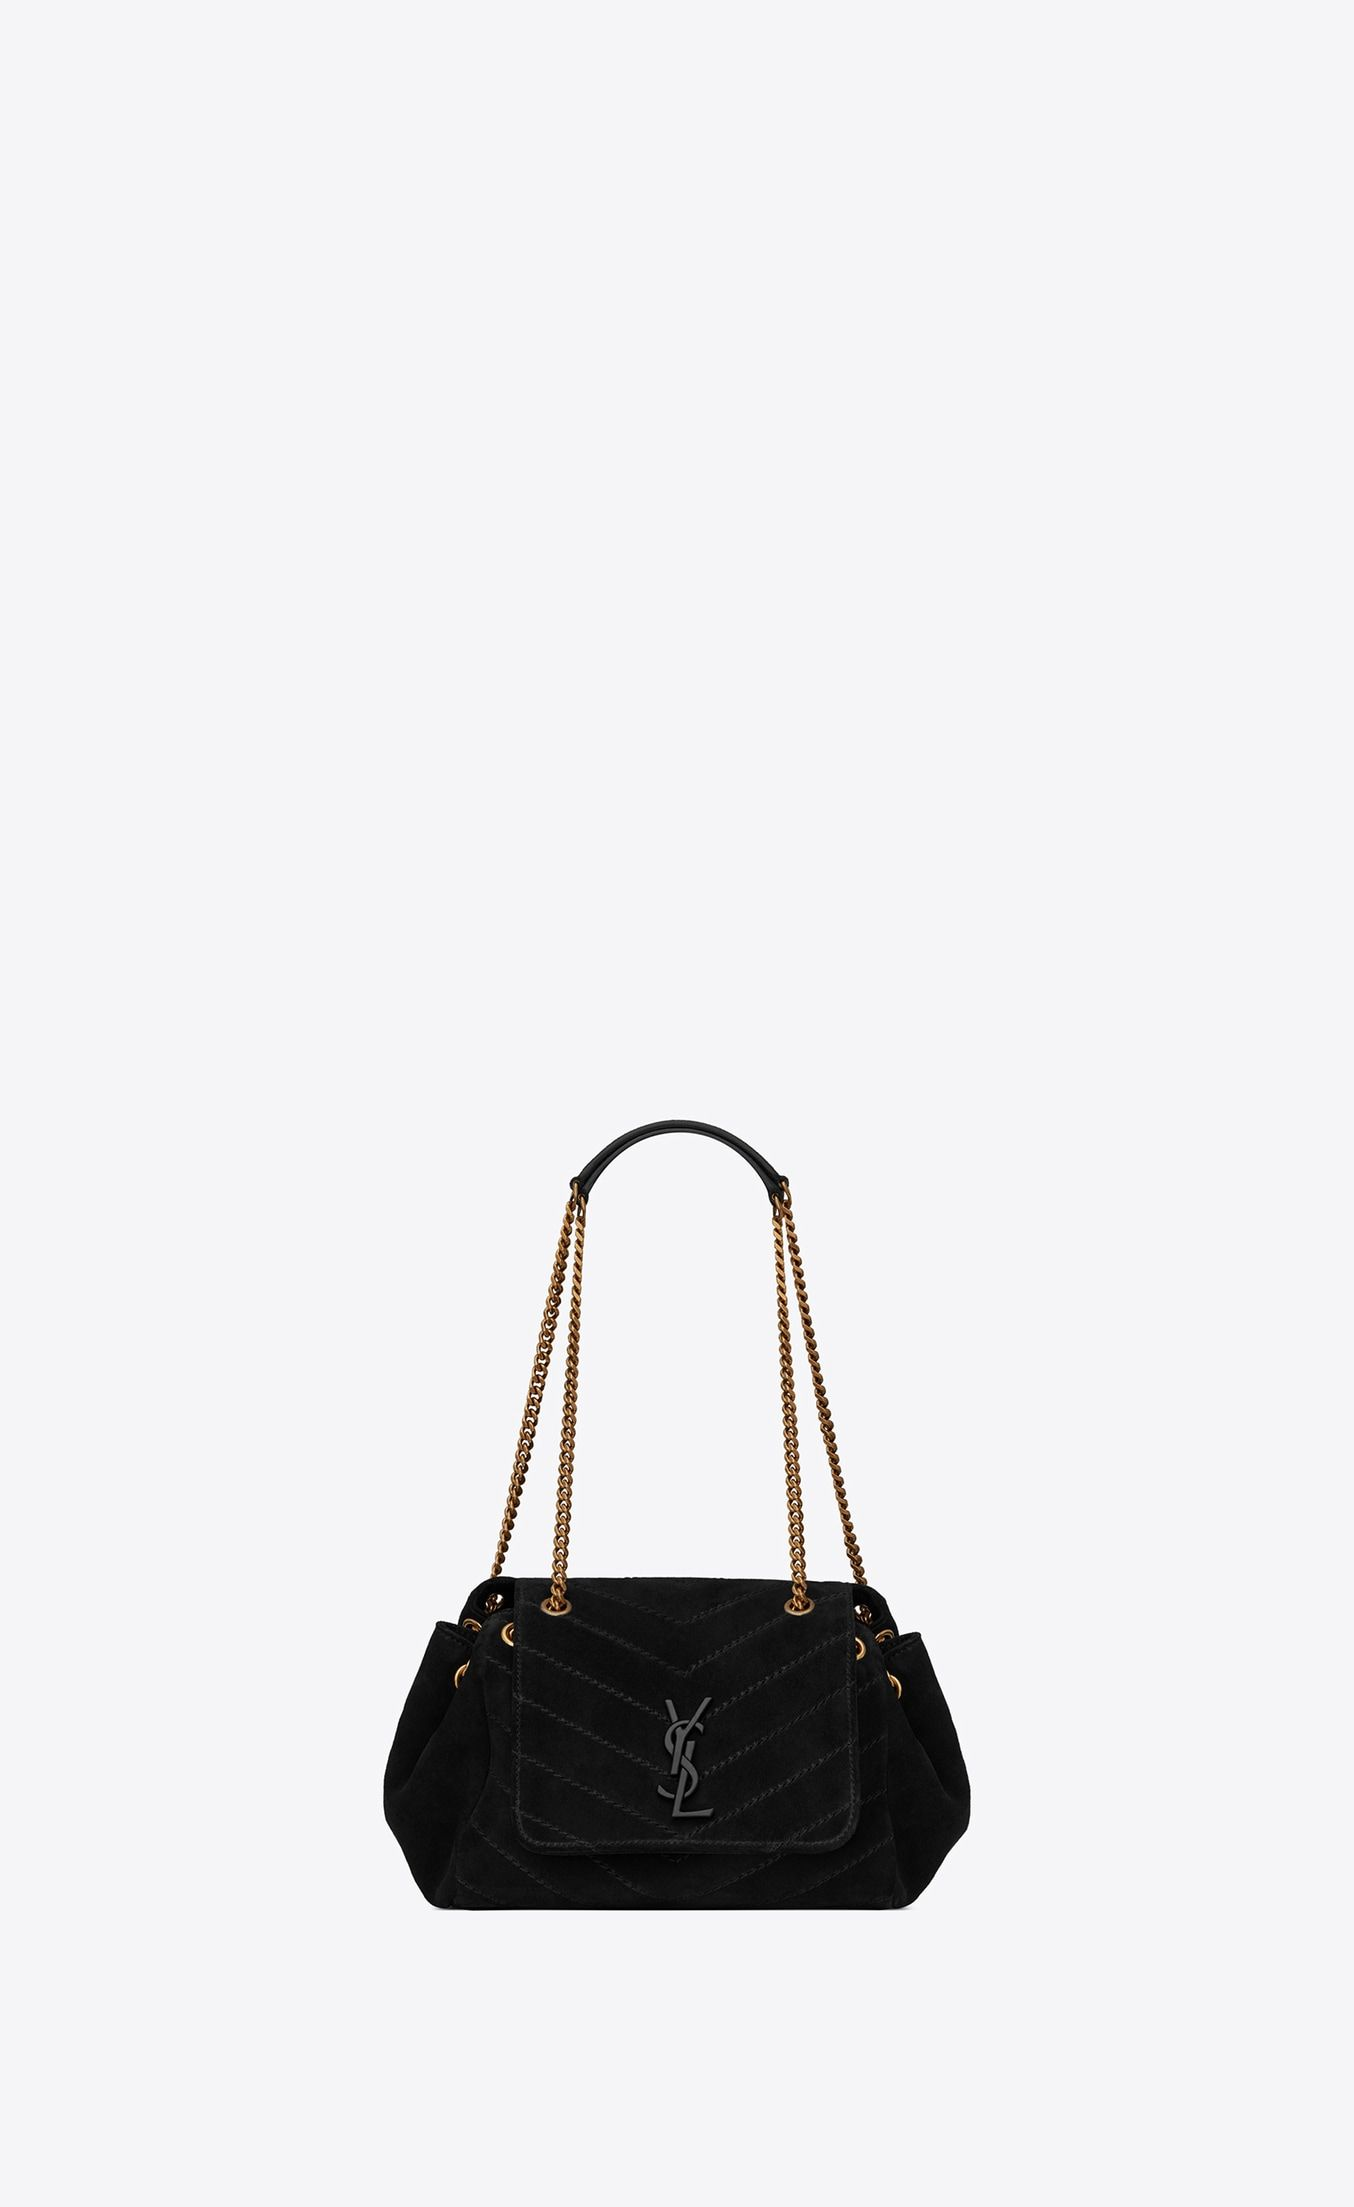 953e8c8768e2 Small Nolita chain bag in suede